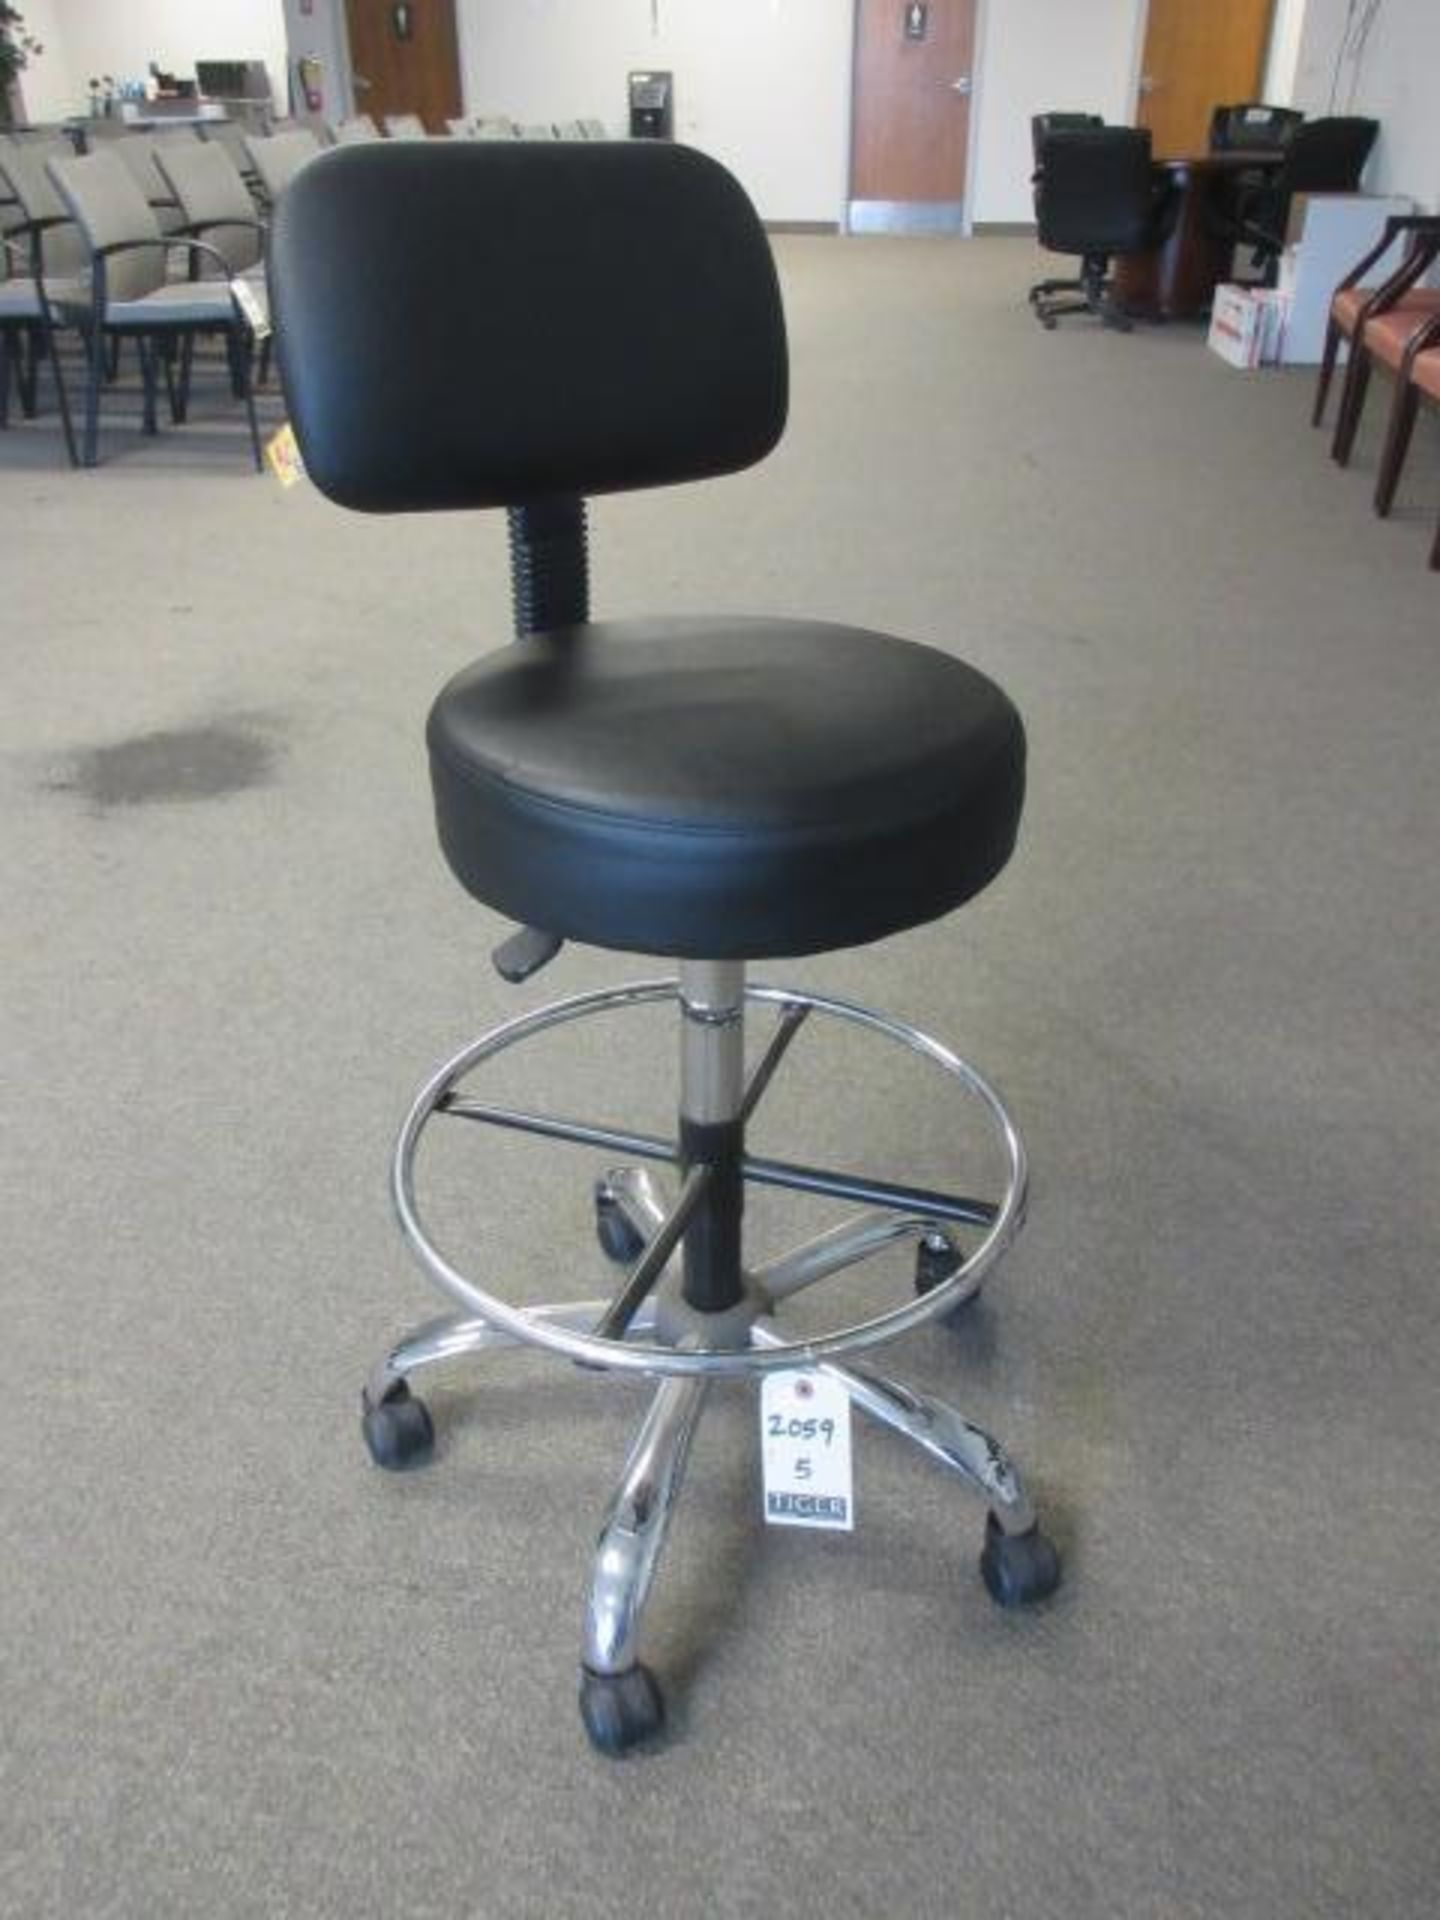 Black Lab Chairs-Swivel Base - Image 4 of 4